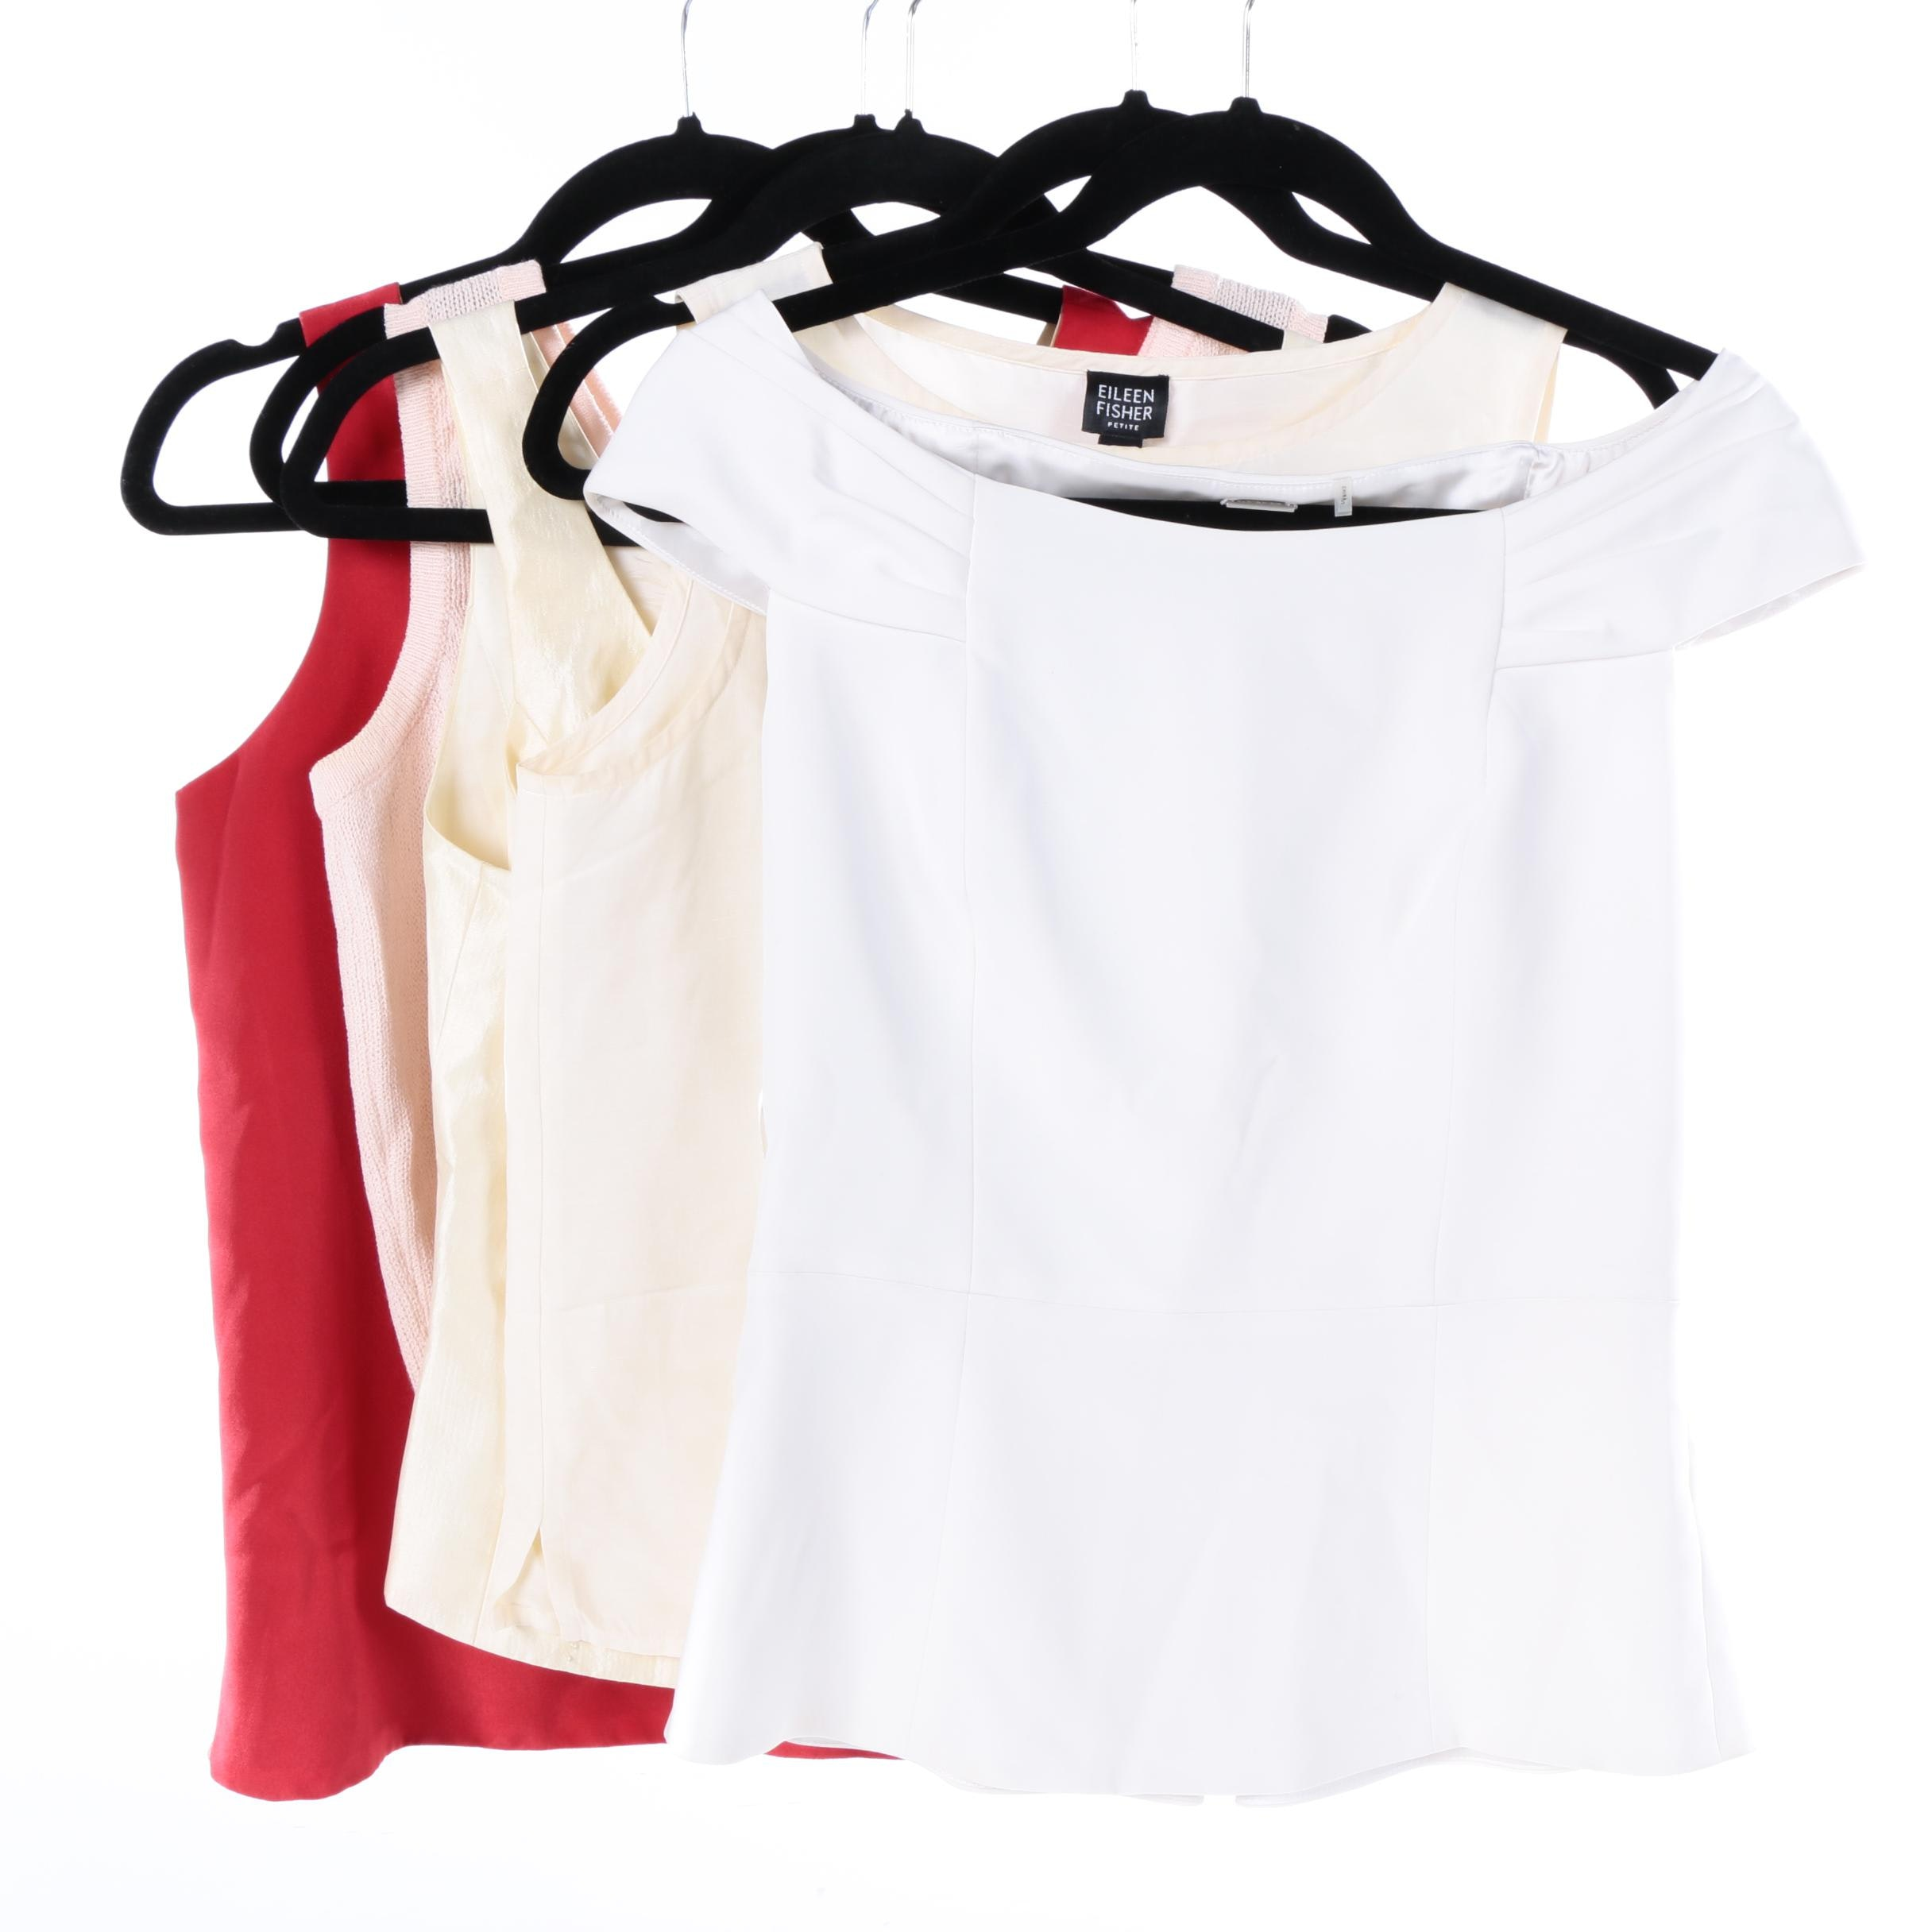 Women's Sleeveless Tops Including Elie Tahari and Eileen Fisher